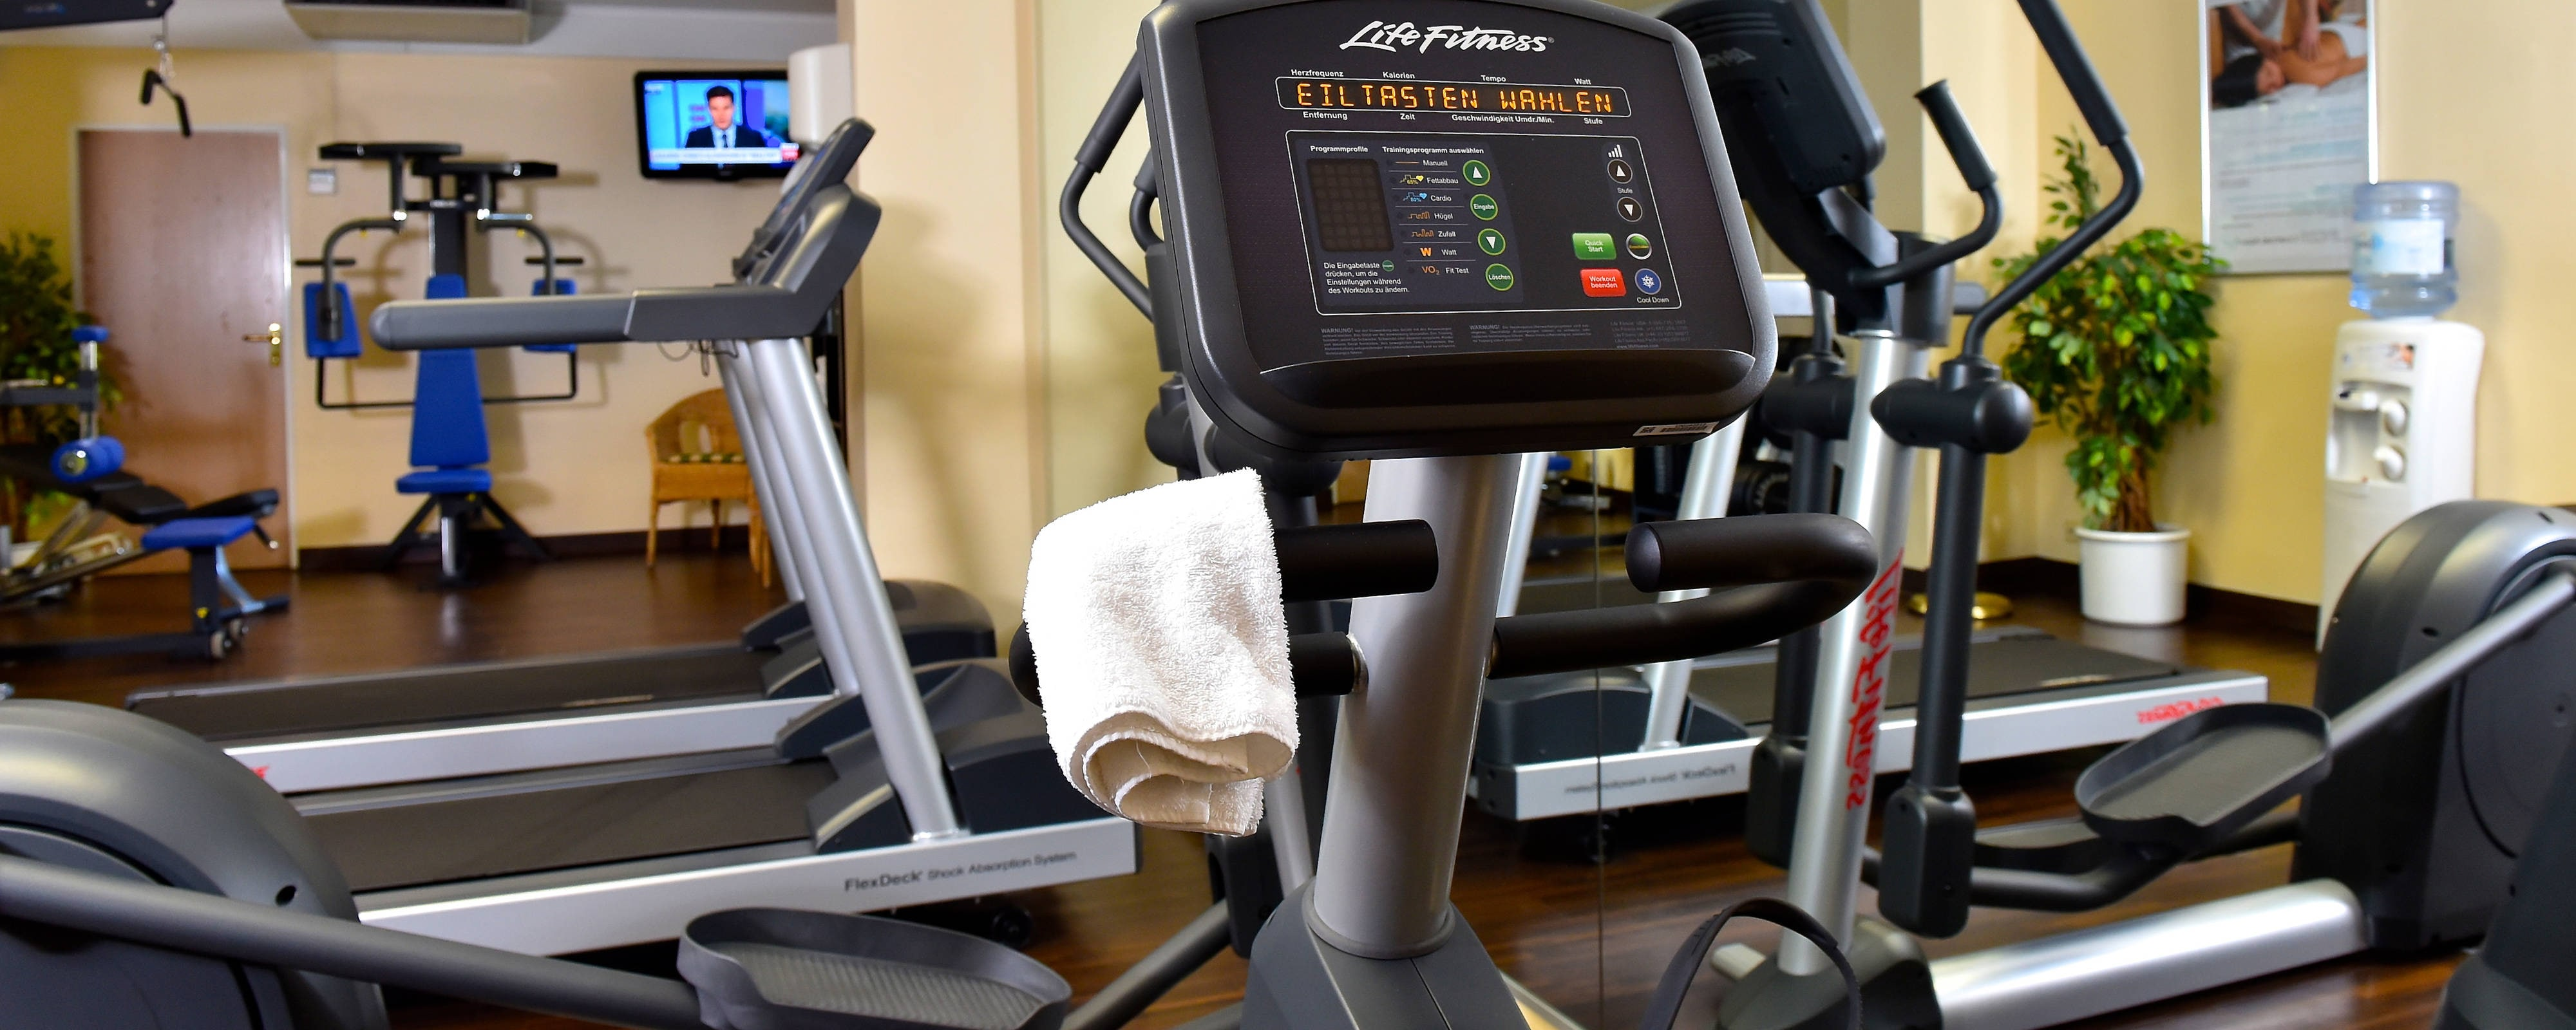 Hamburg Airport Hotel Fitness Center